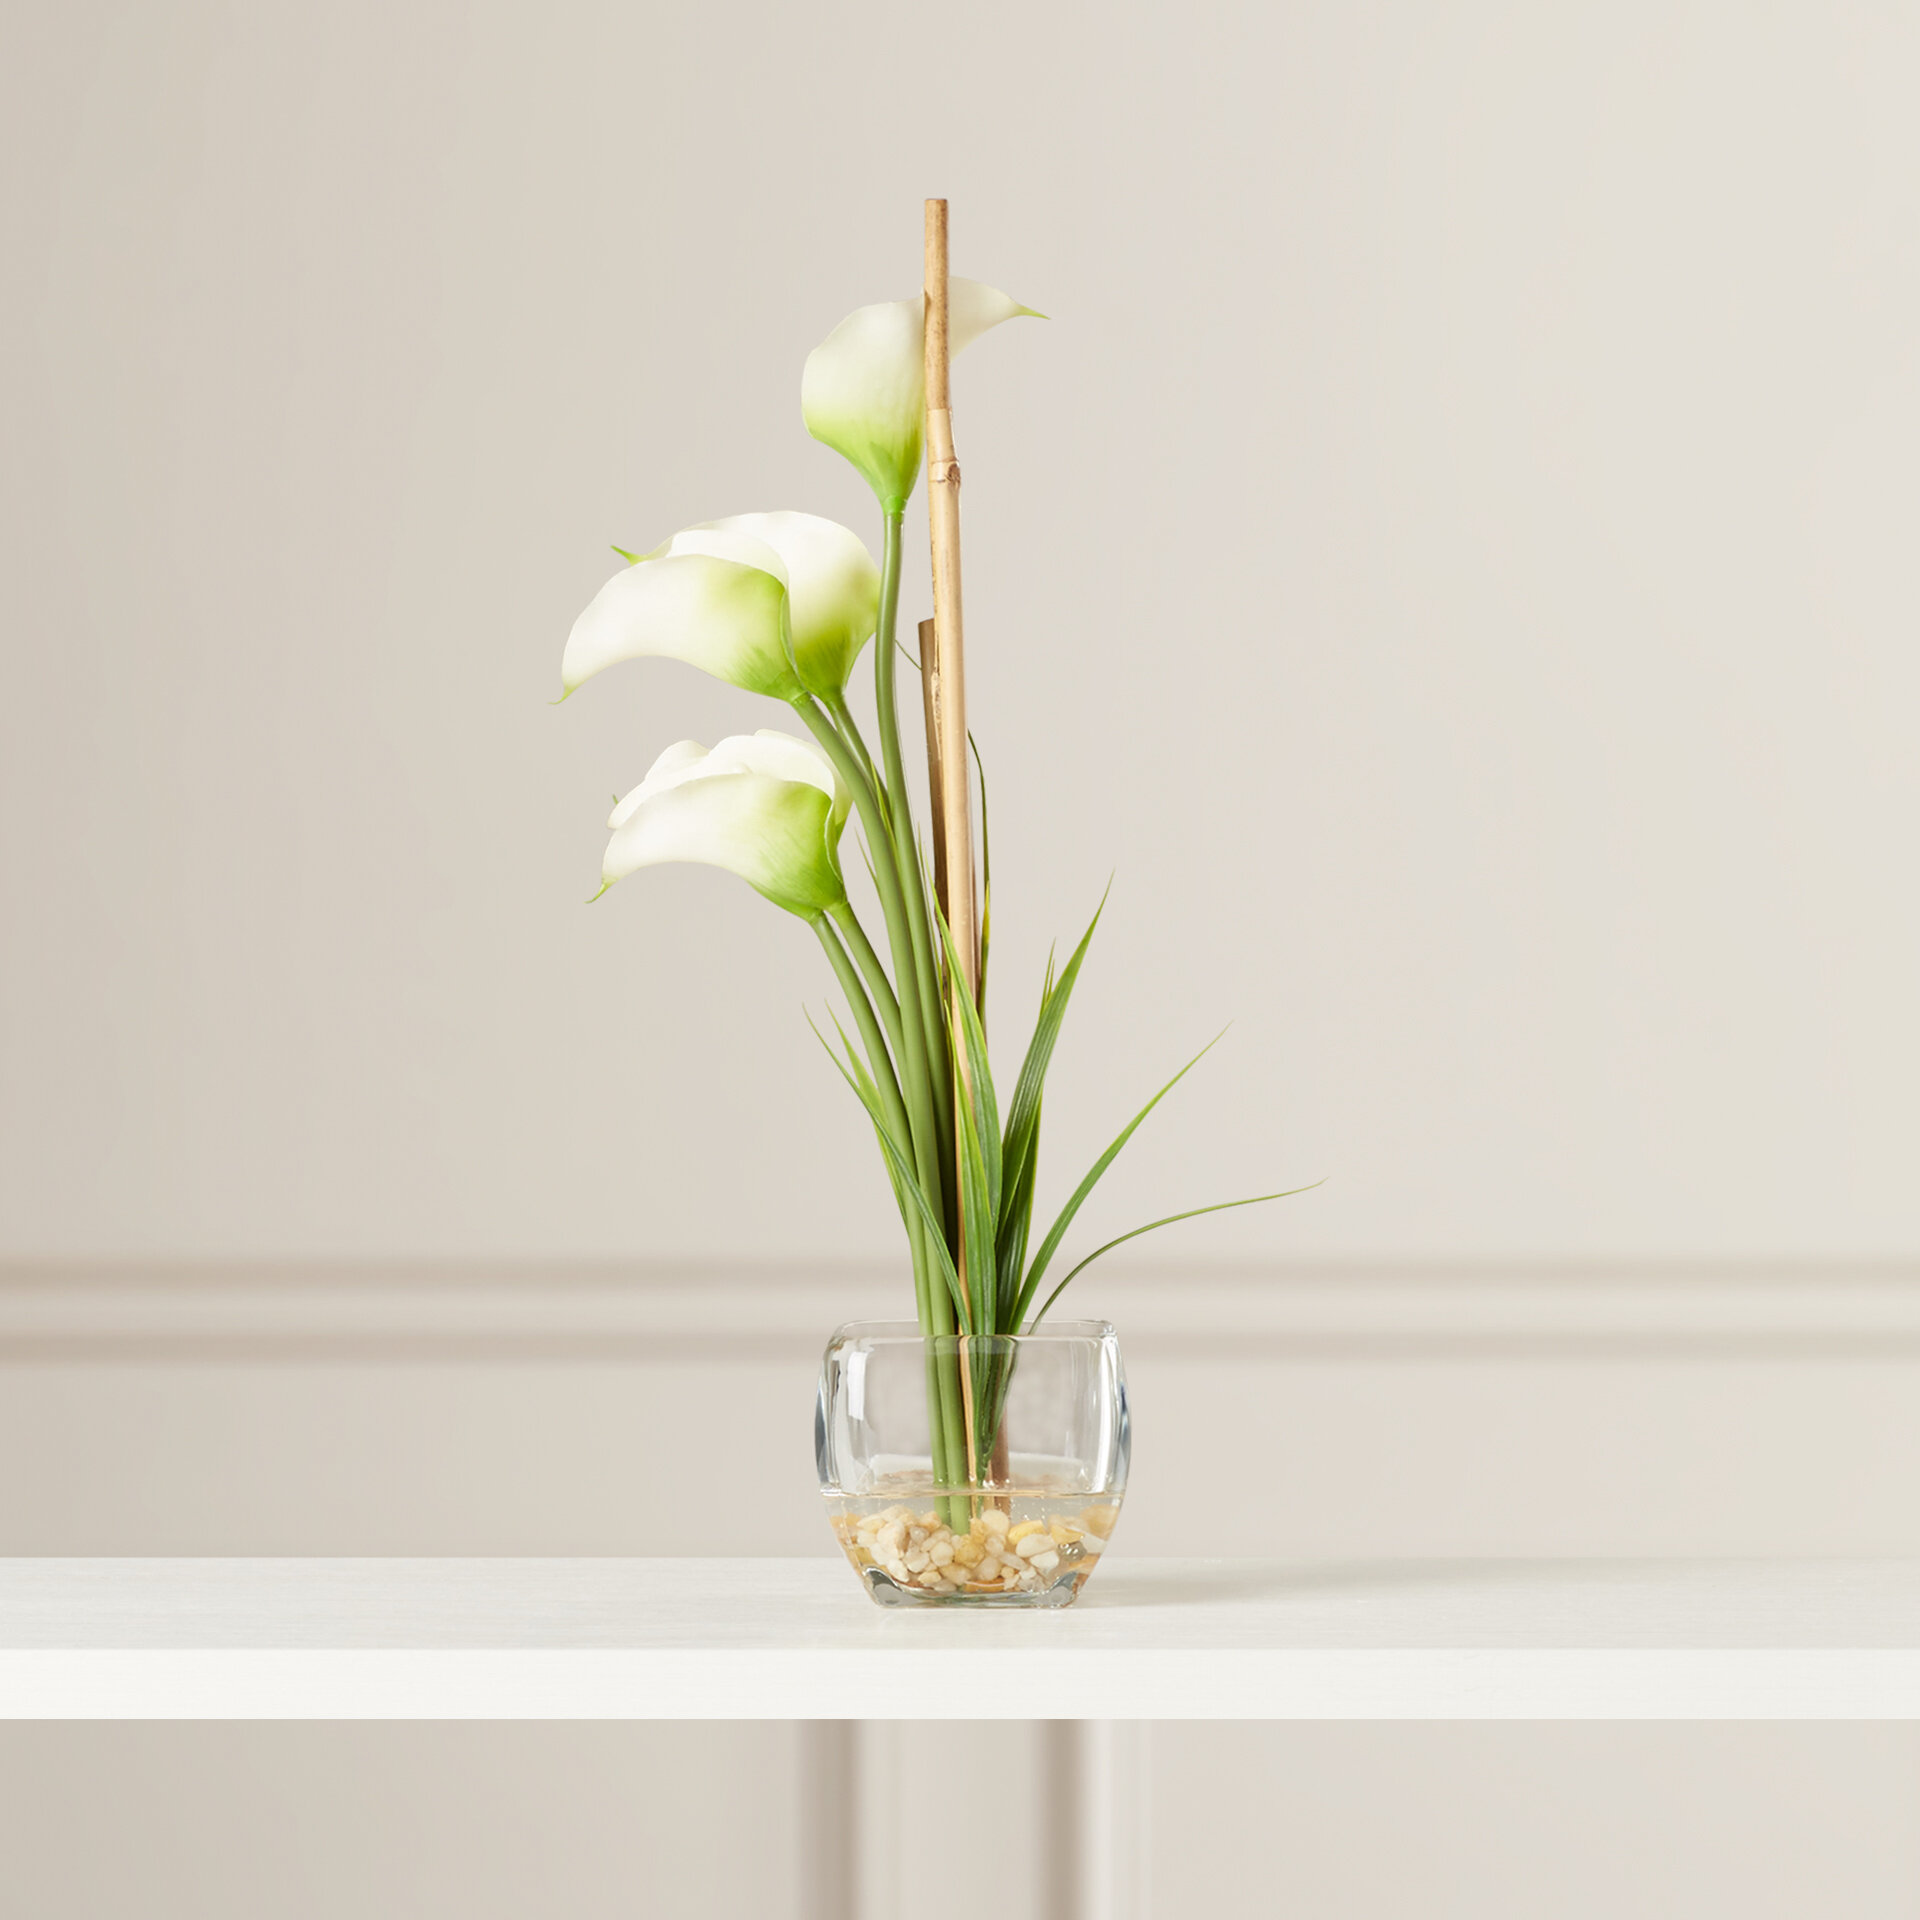 Willa Arlo Interiors Silk Calla Lily With Vase Reviews Wayfair